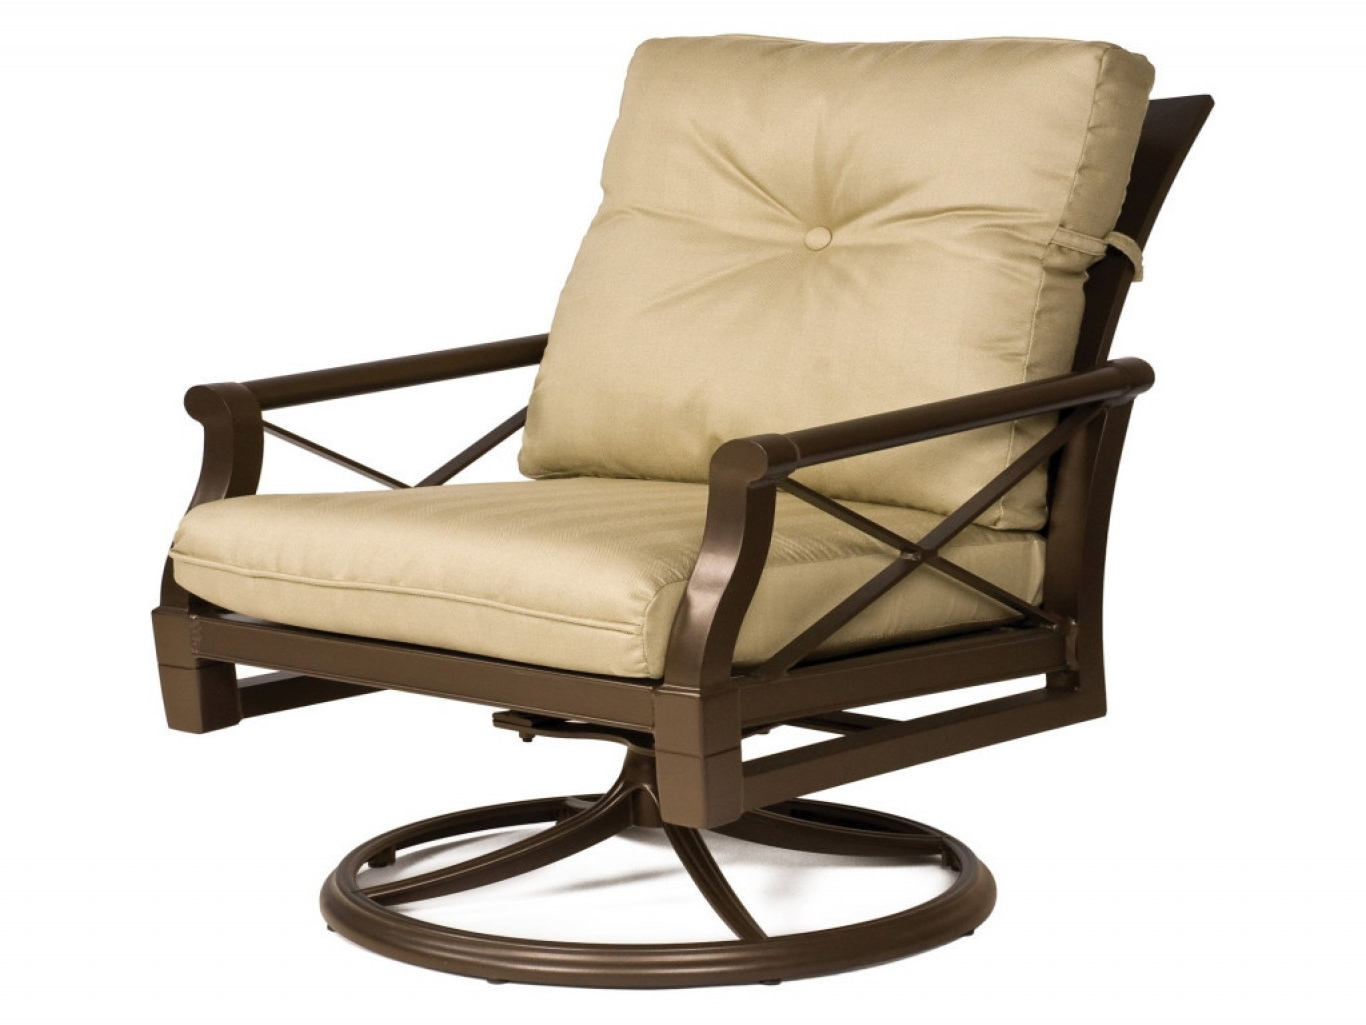 Outdoor Chaise Lounge Chairs Ikea Transitional Swivel Chairs Regarding Most Popular Overstock Outdoor Chaise Lounge Chairs  sc 1 st  Furniture Decor Lighting and More. & View Gallery of Overstock Outdoor Chaise Lounge Chairs (Showing 9 of ...